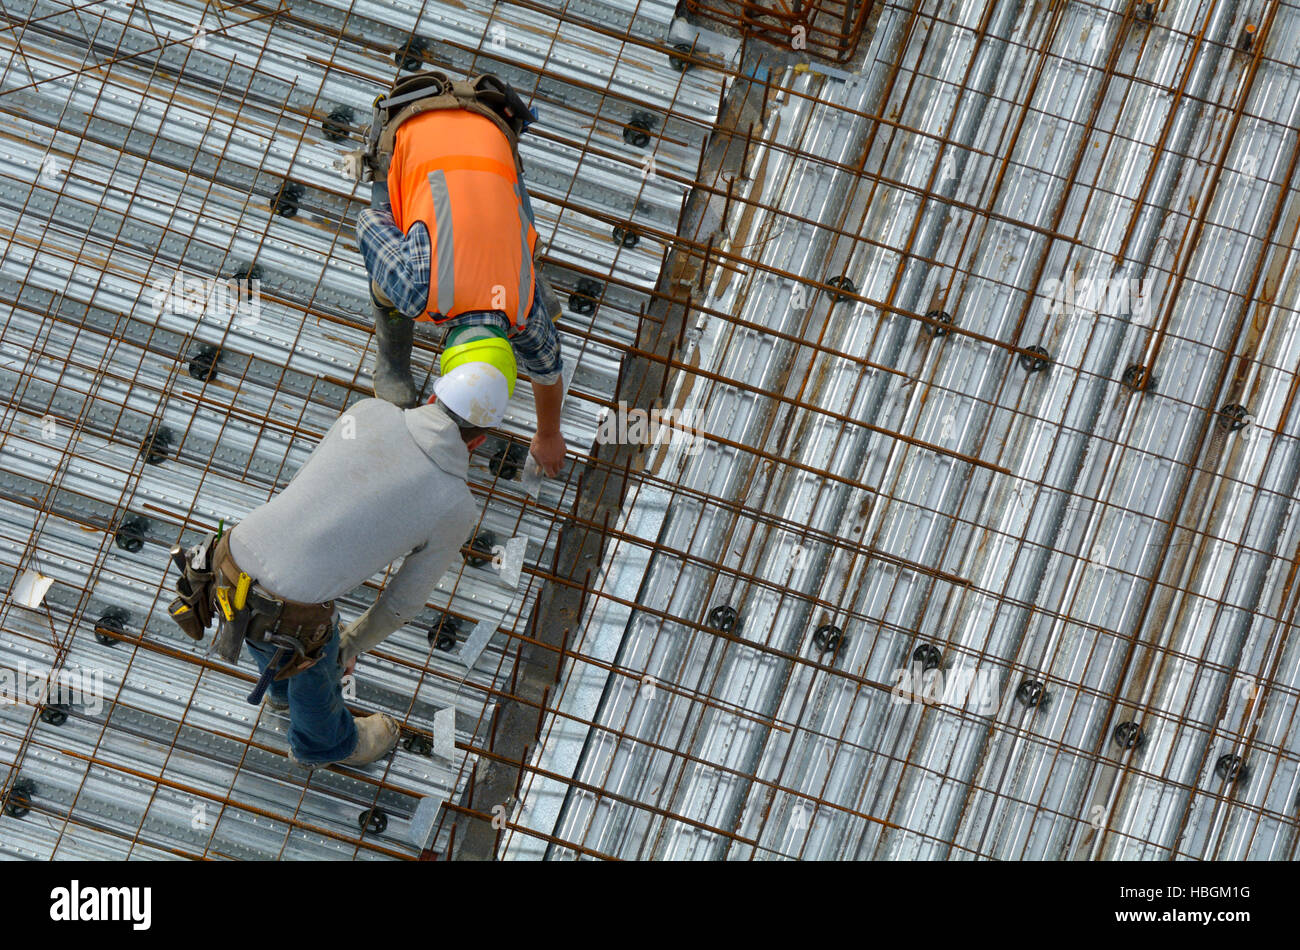 Aerial view of unrecognized civil engineer inspecting the work progress of a worker in a construction site. Building - Stock Image